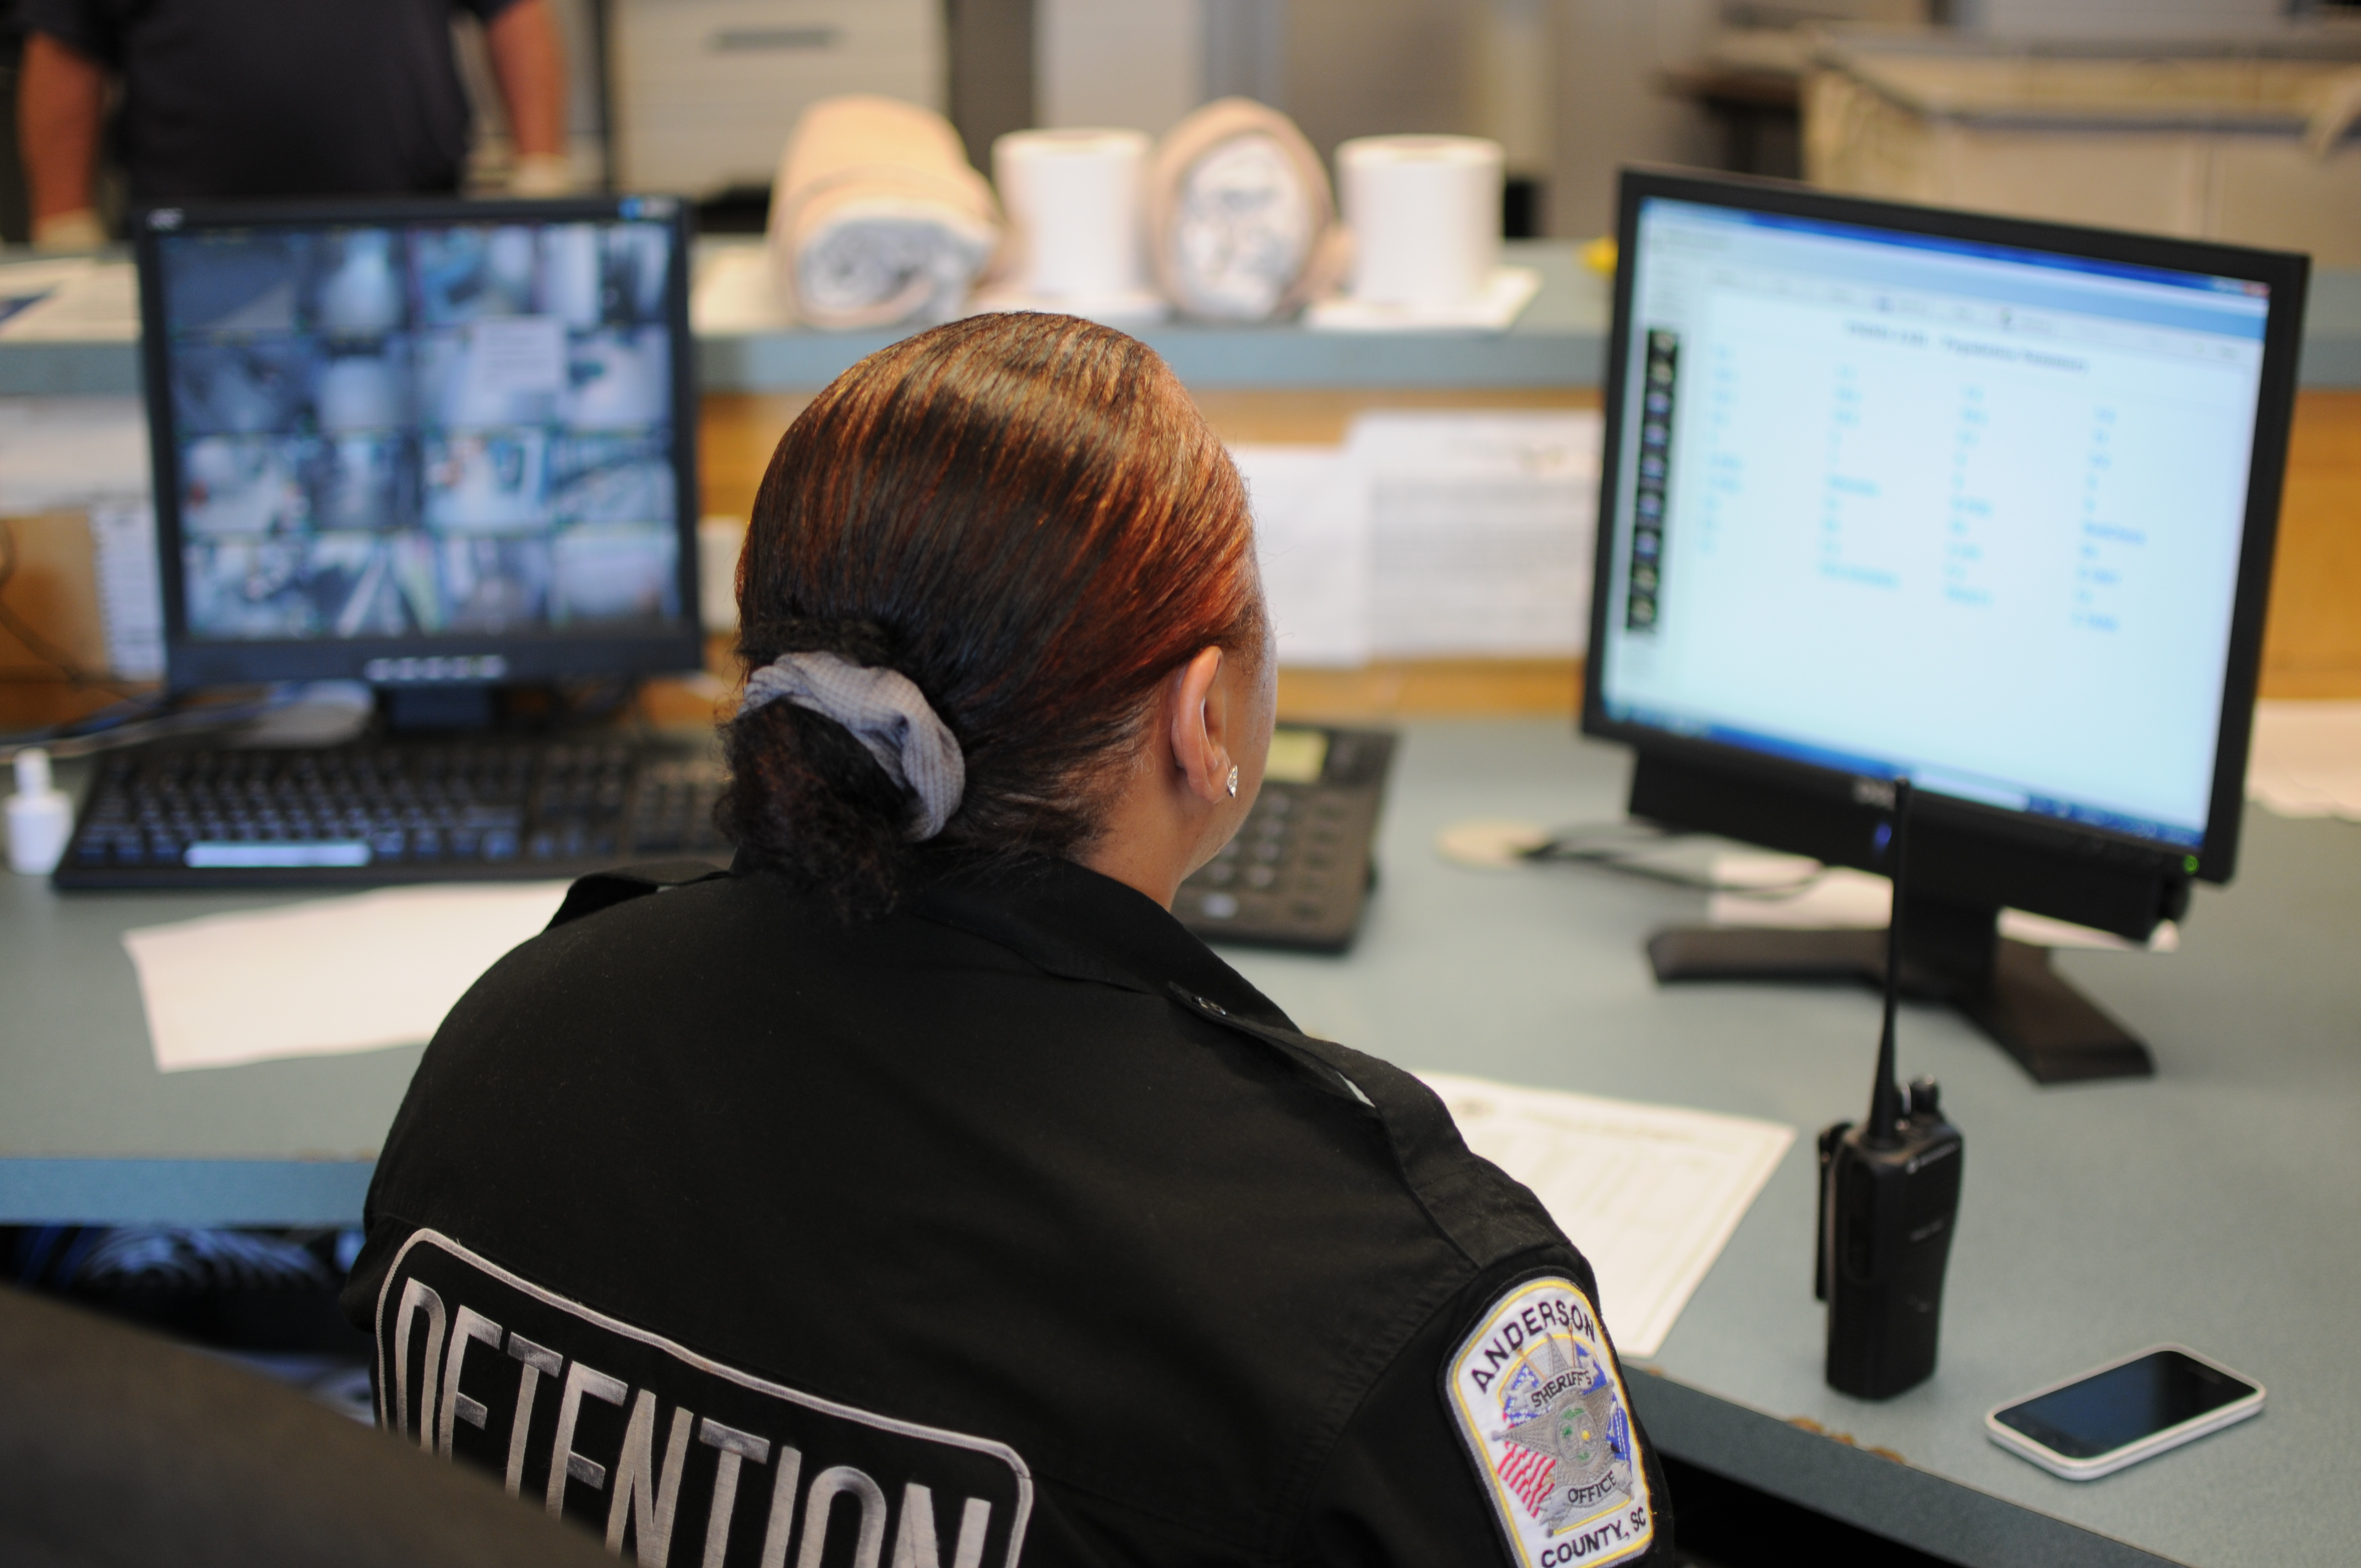 Corrections Officer taking online training